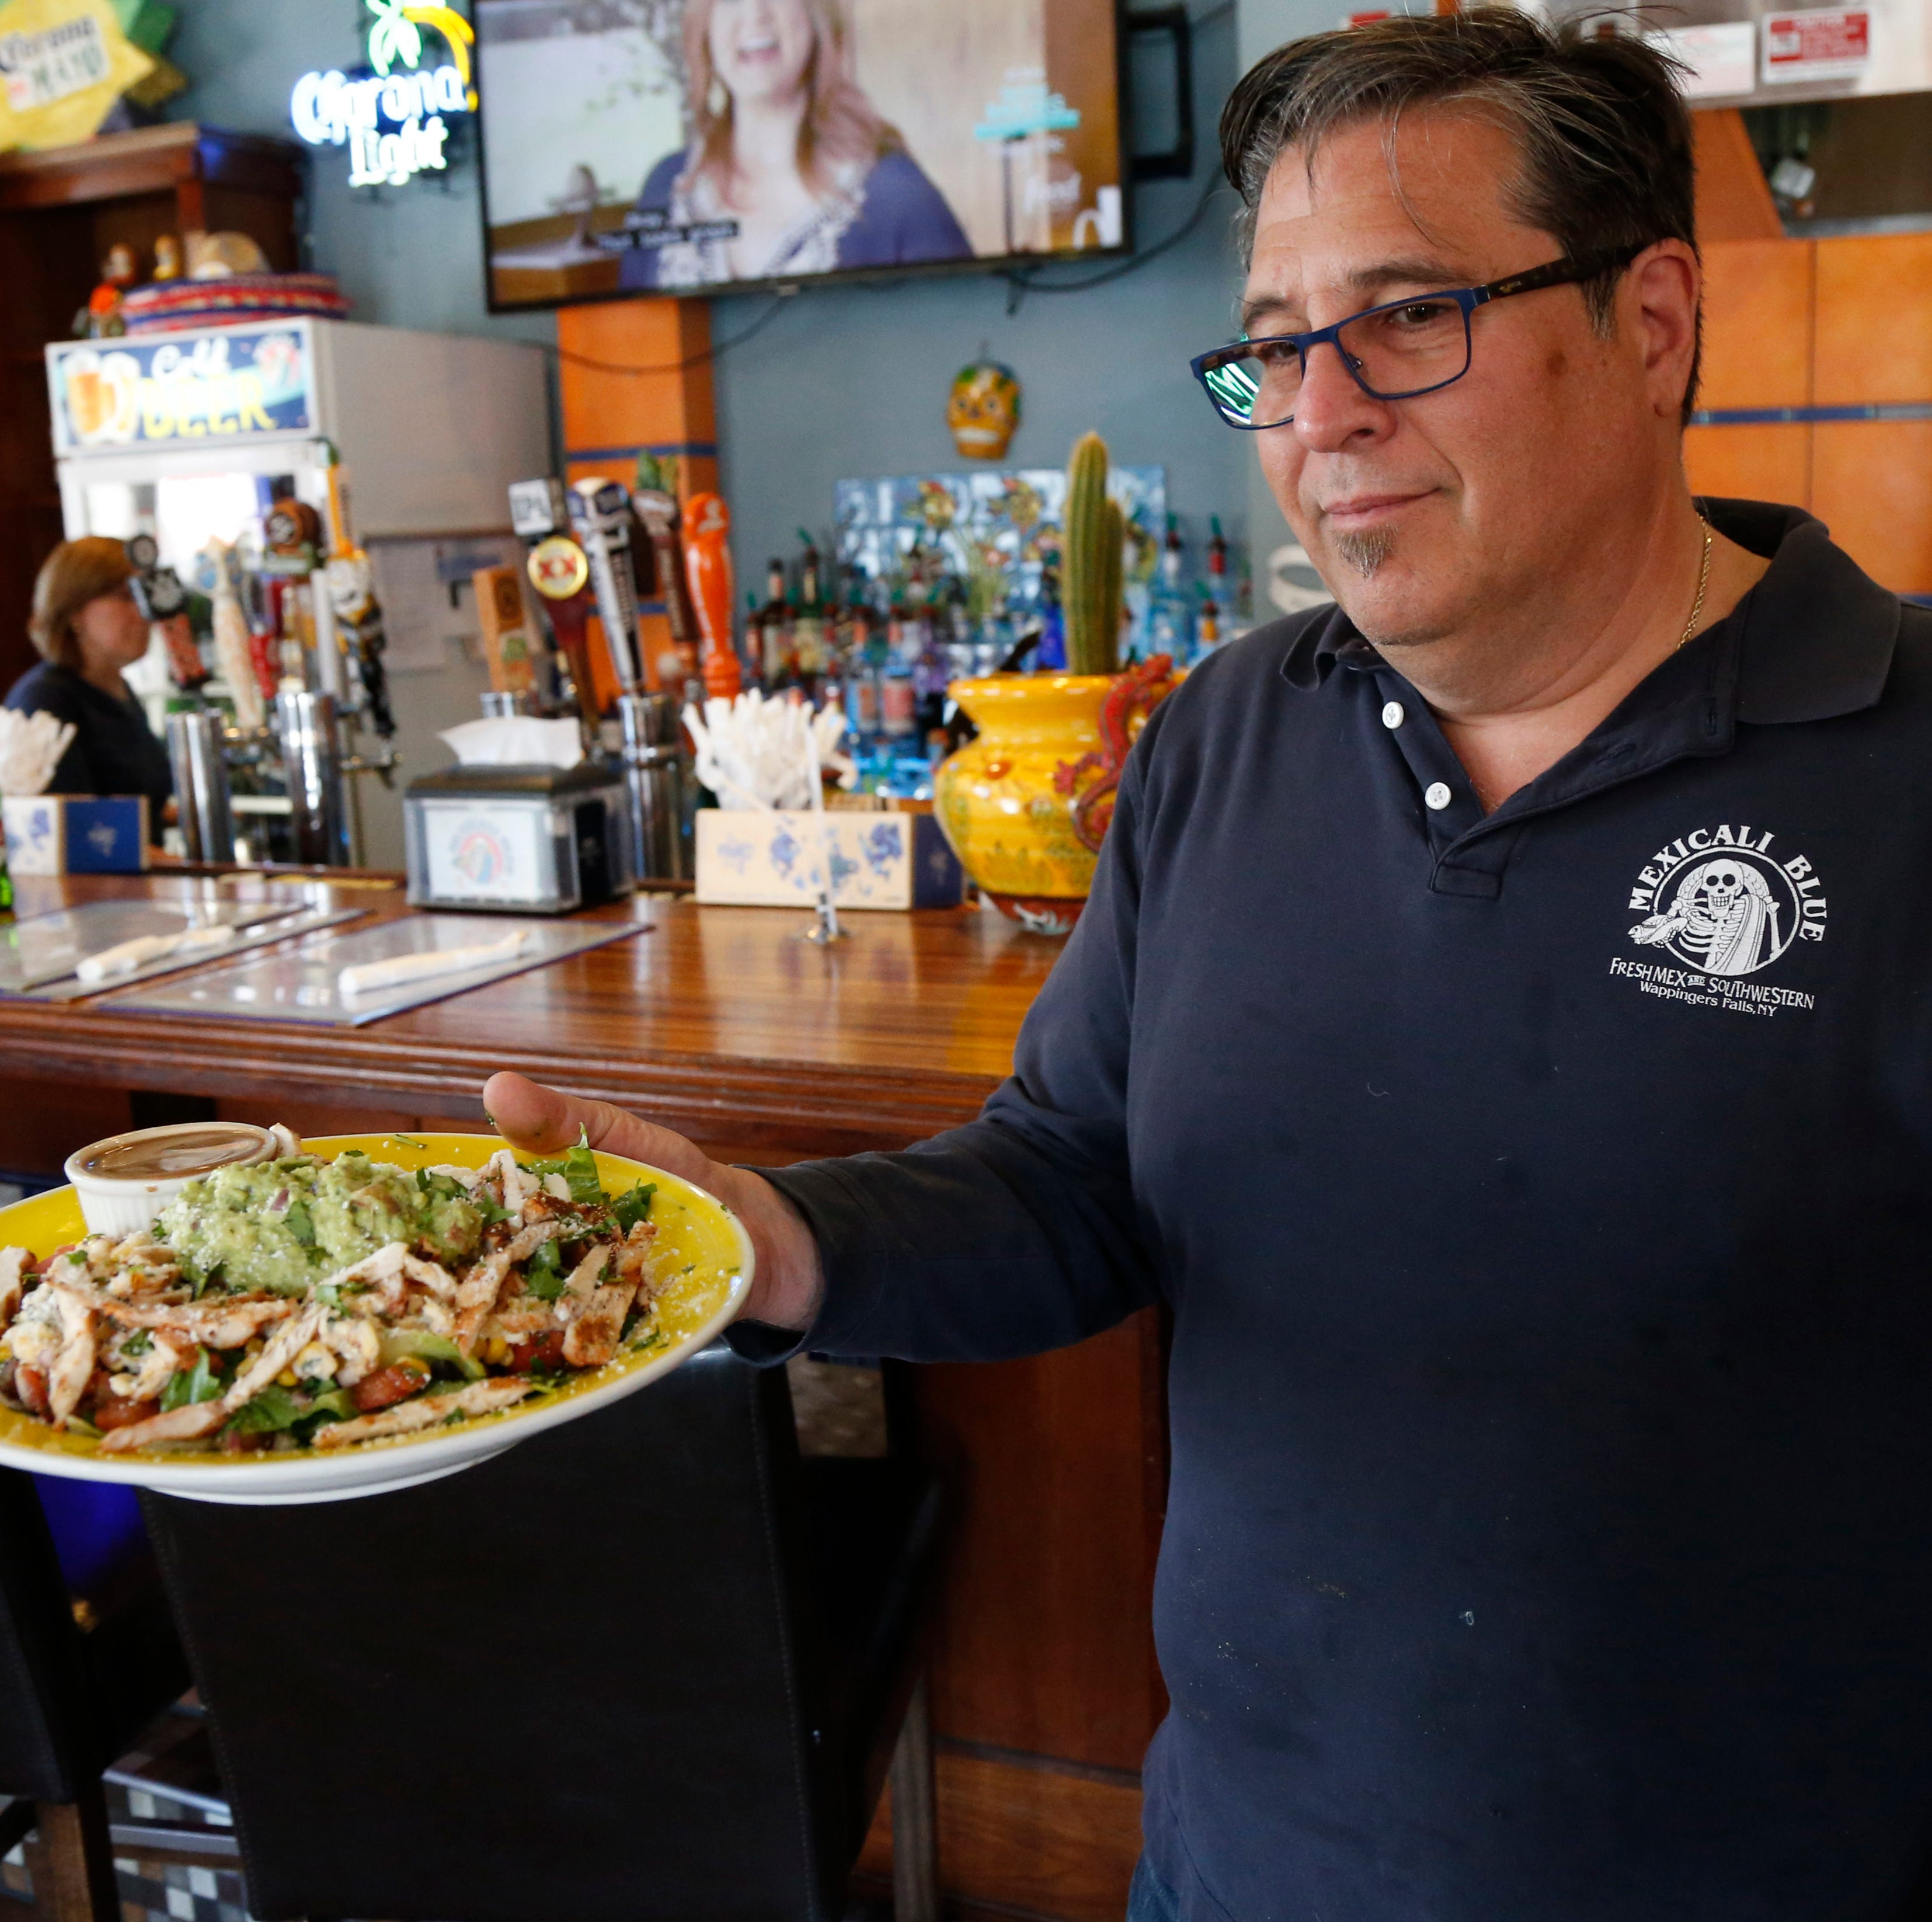 Wappingers Falls Mexican restaurant is a family affair